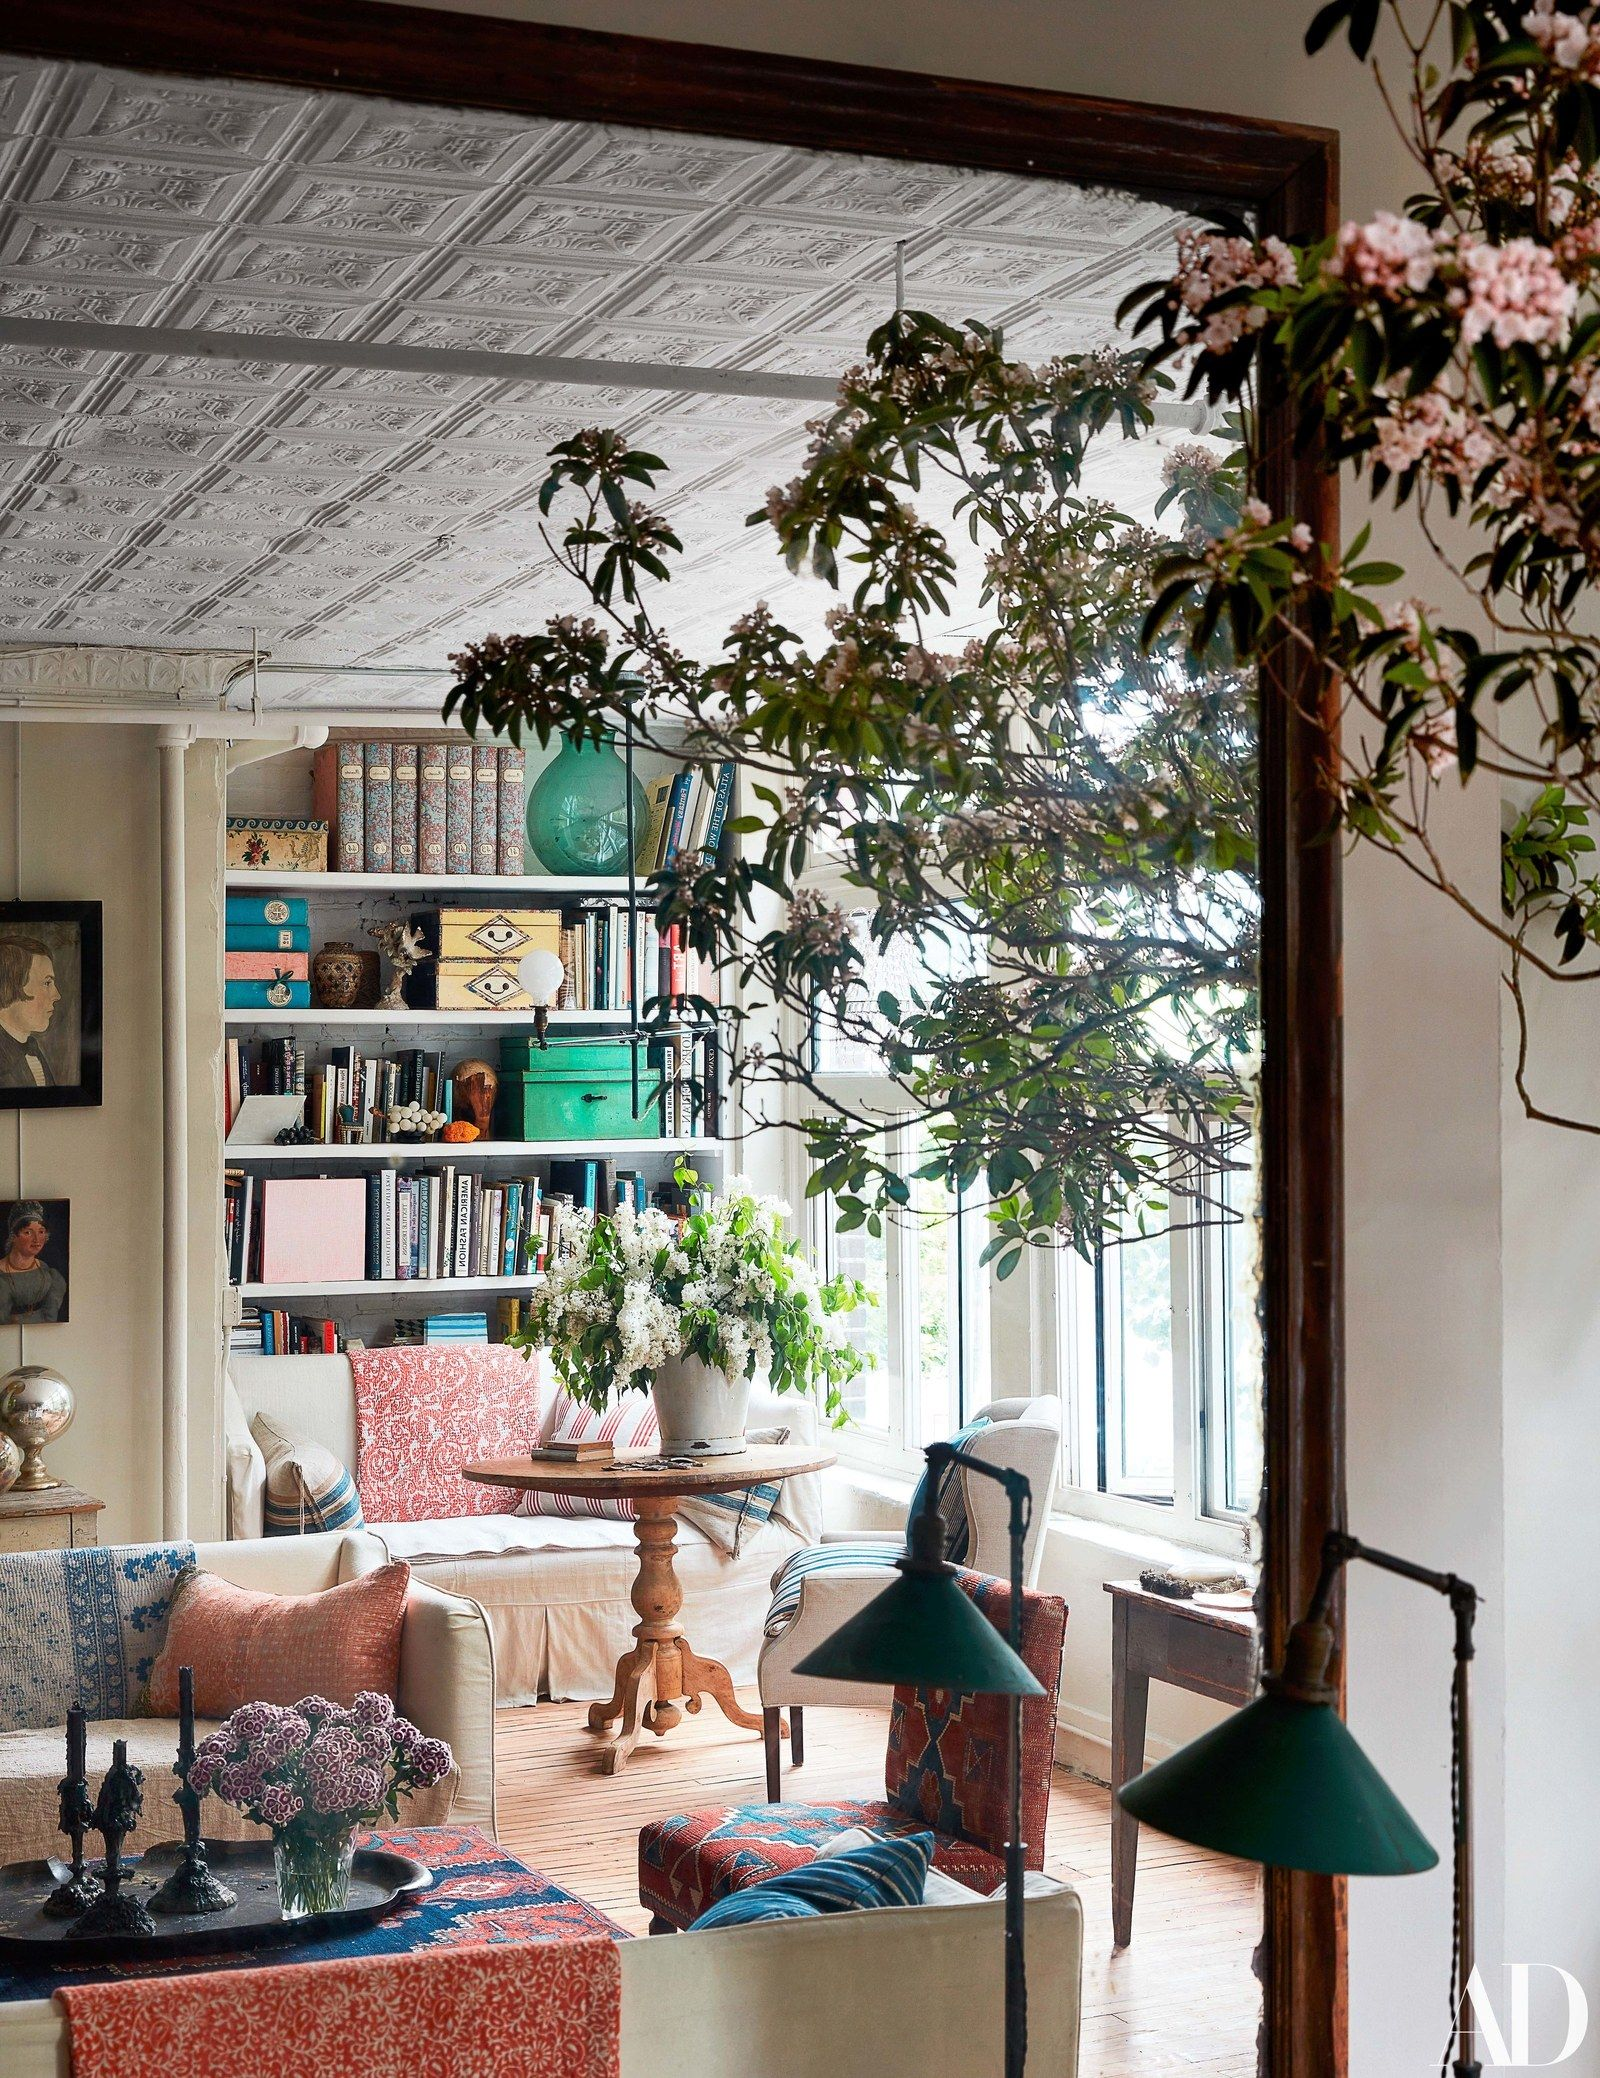 corner of the living room as seen in reflection an antique mirror is also john derian   new york city abode charming and eclectic his rh pinterest